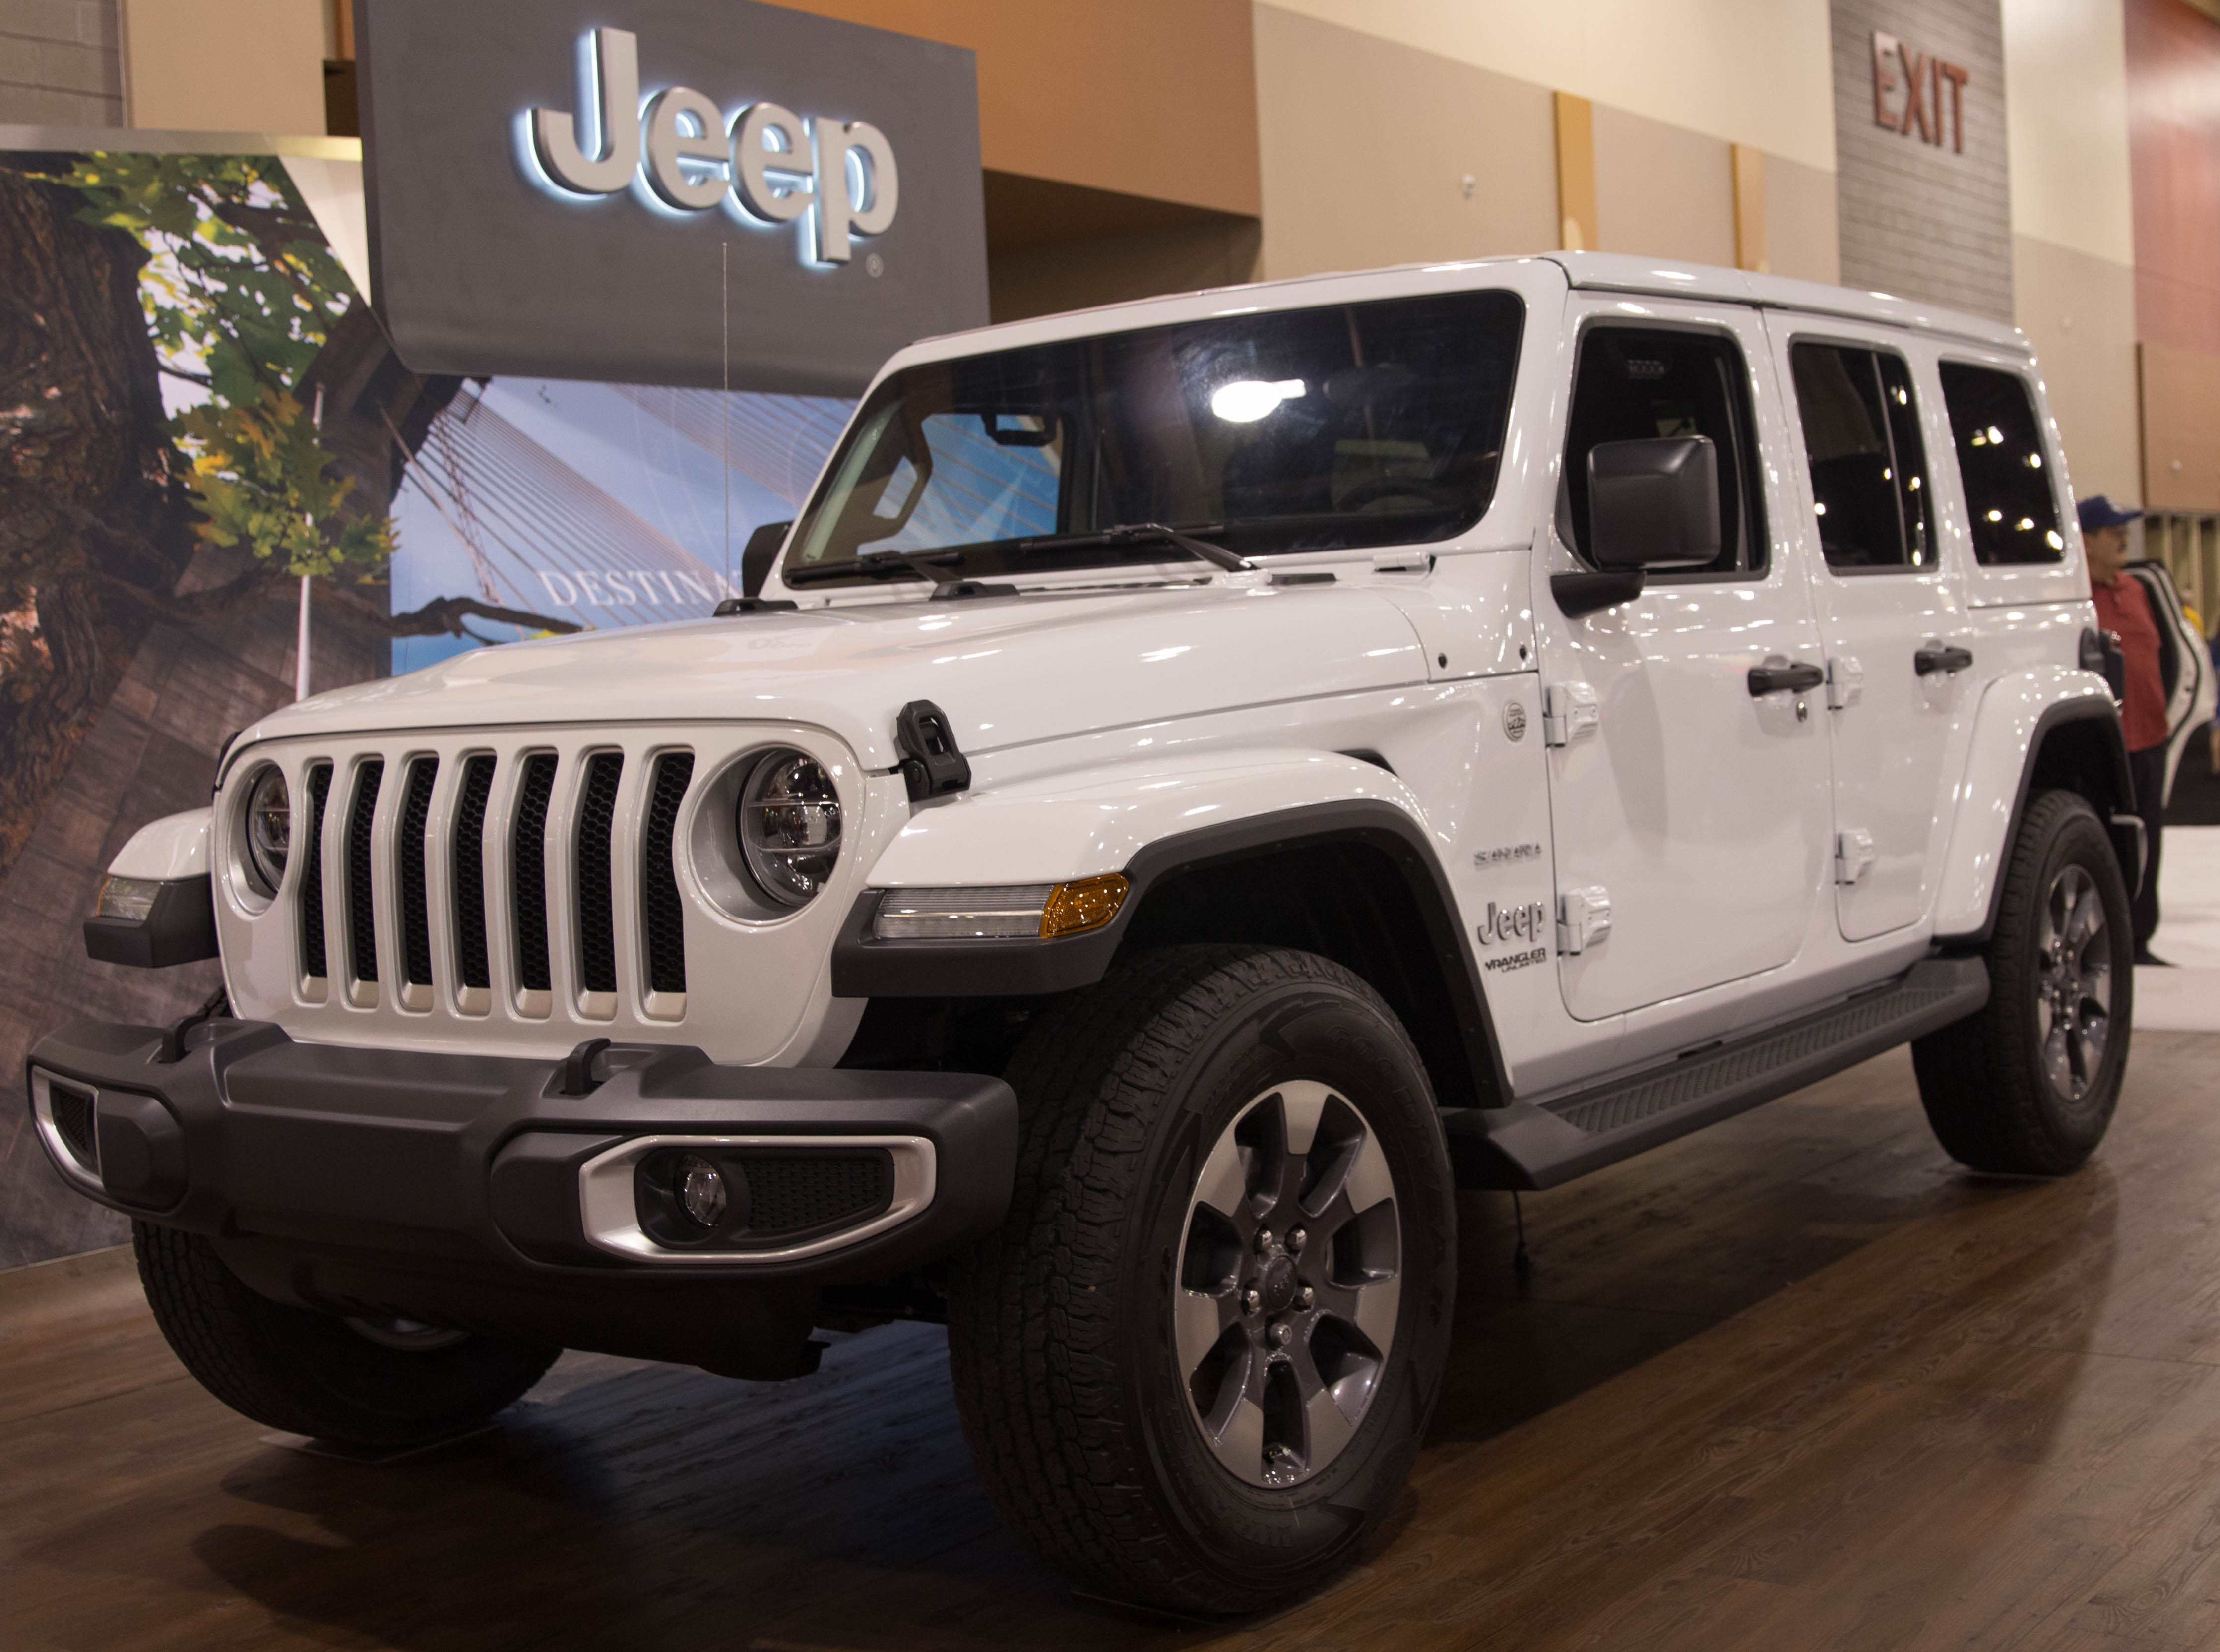 The 2019 Jeep Wrangler was on display at the Arizona International Auto Show.